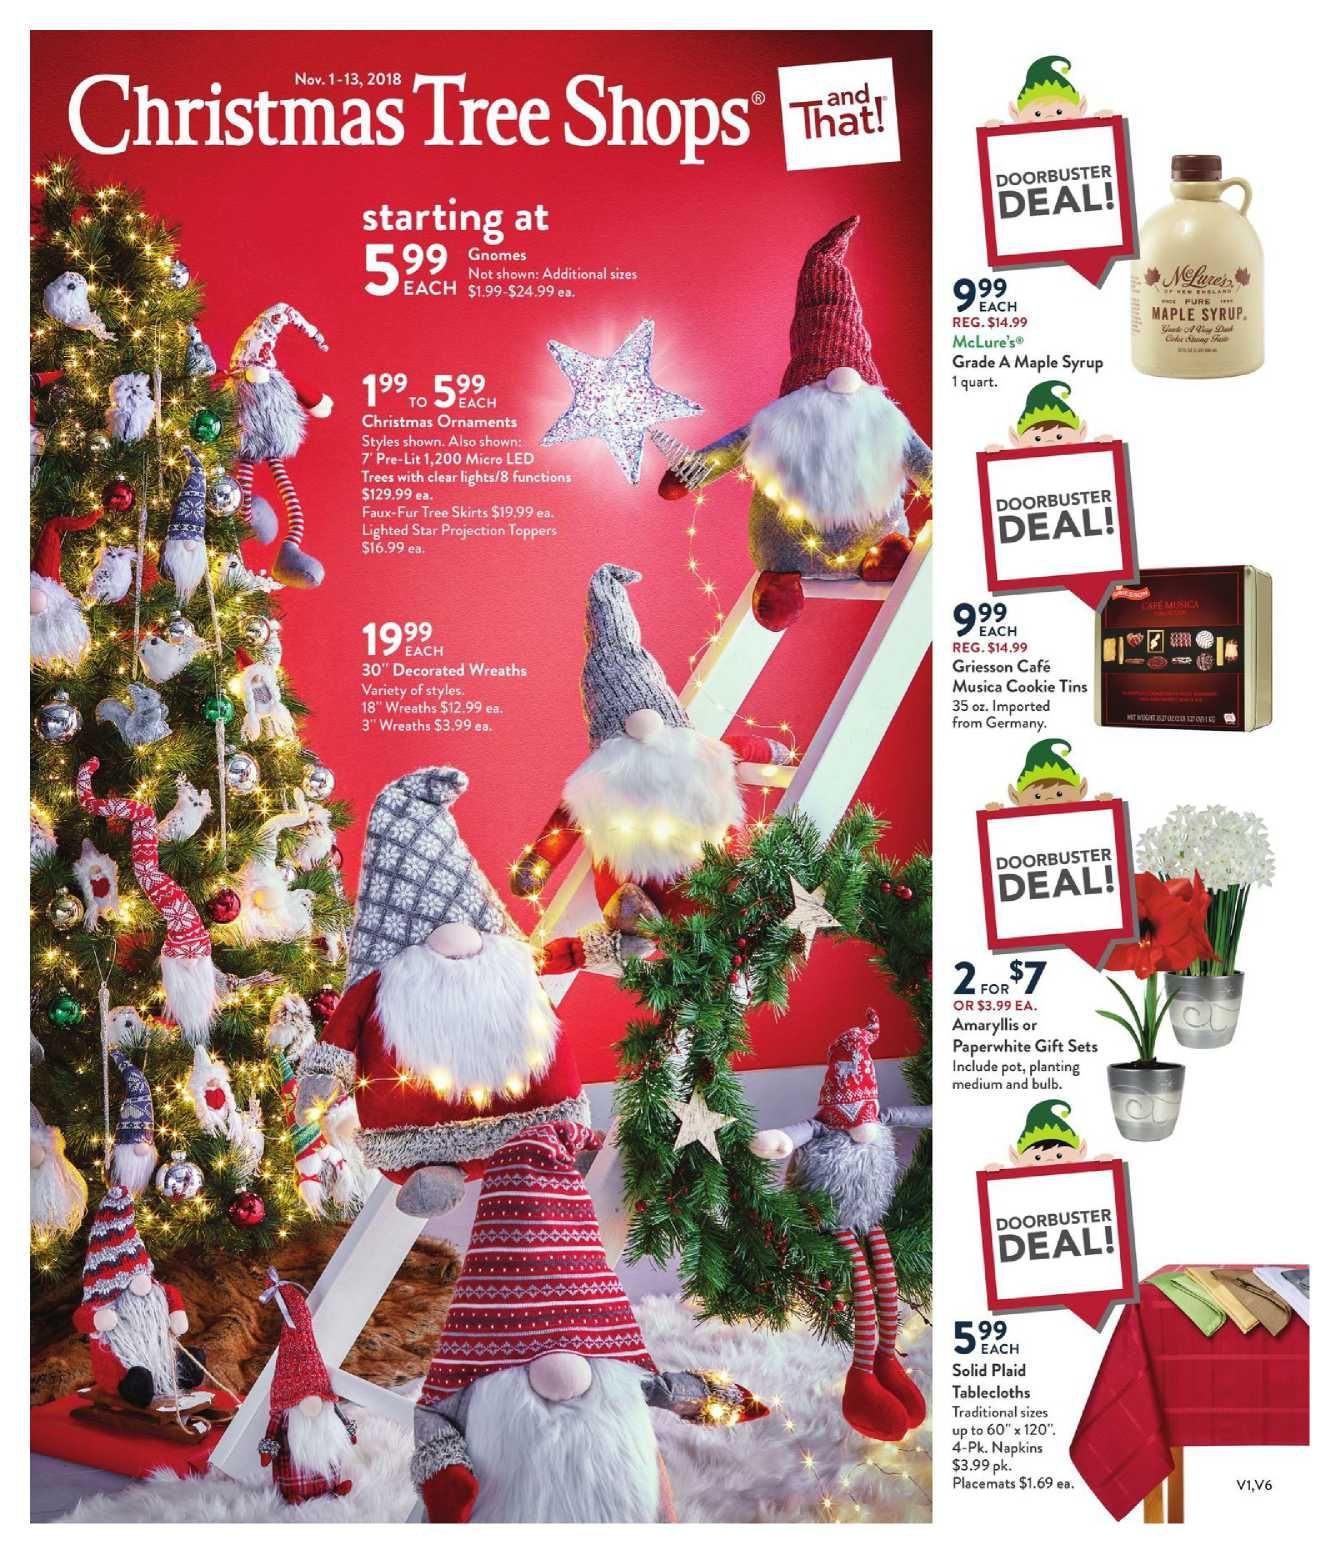 Christmas Tree Shops Circular Flyer January 10 20 2019 Weeklyad123 Com Weekly Ad Circular Grocery Stores Christmas Tree Shop Tree Shop Christmas Tree